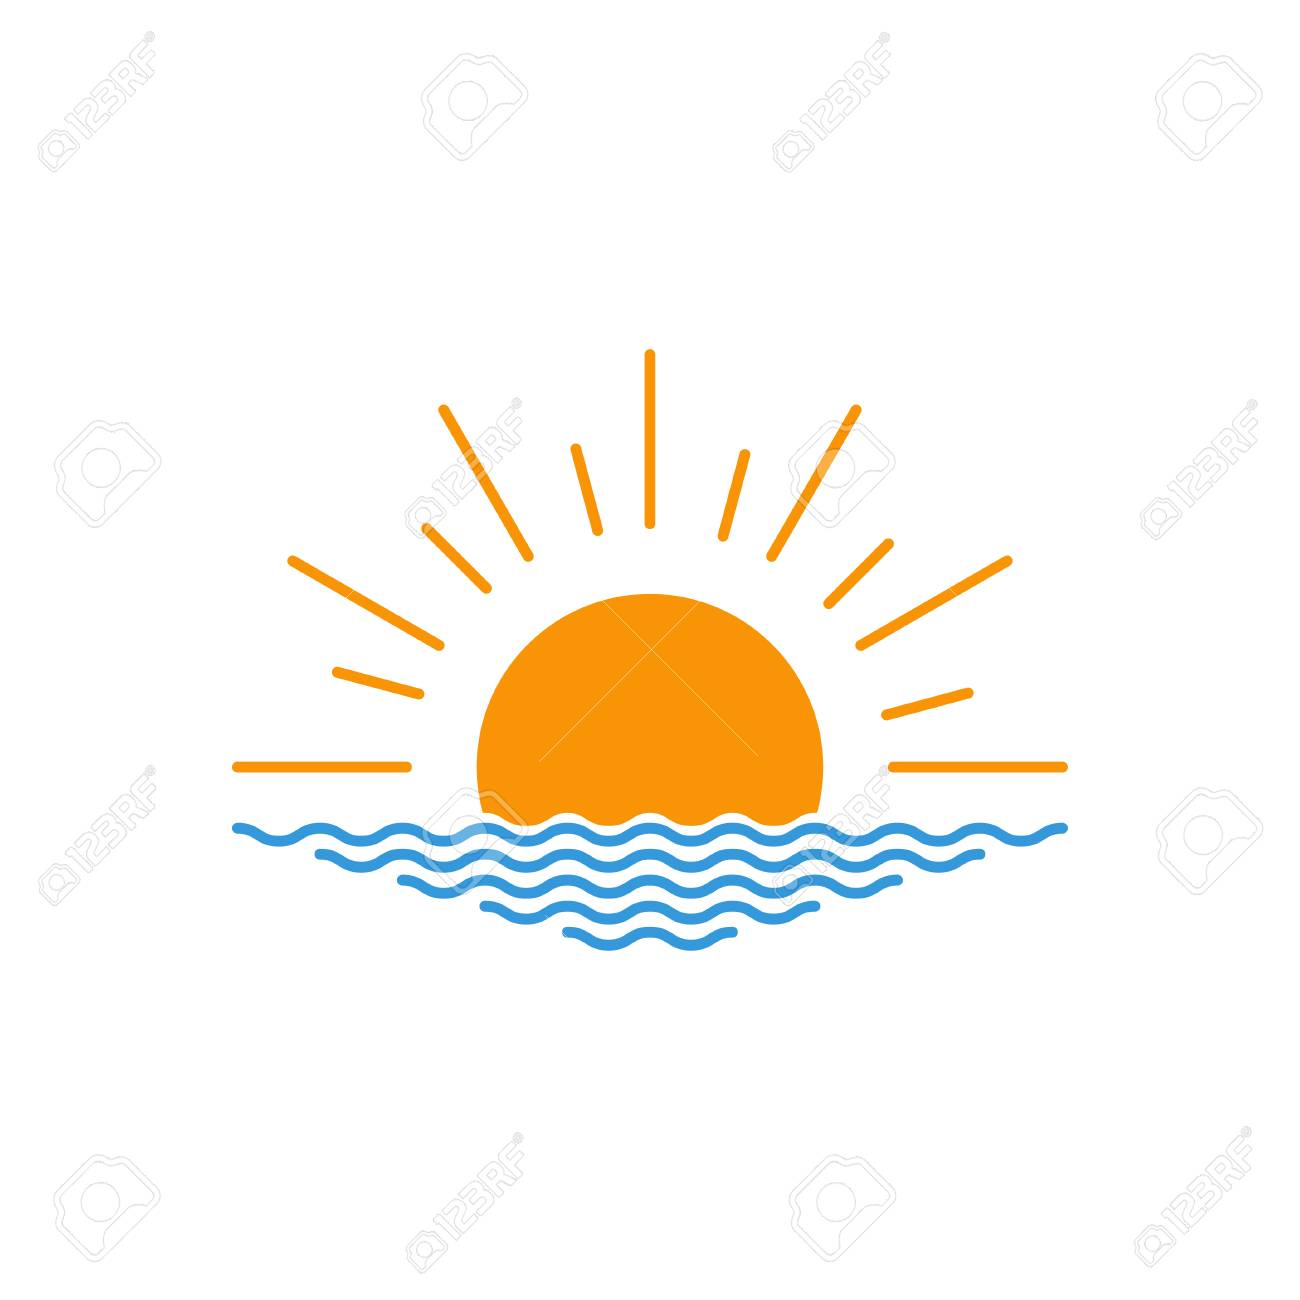 vector sunset or sunrise icon vector sunset or sunrise icon royalty free cliparts vectors and stock illustration image 61244497 vector sunset or sunrise icon vector sunset or sunrise icon